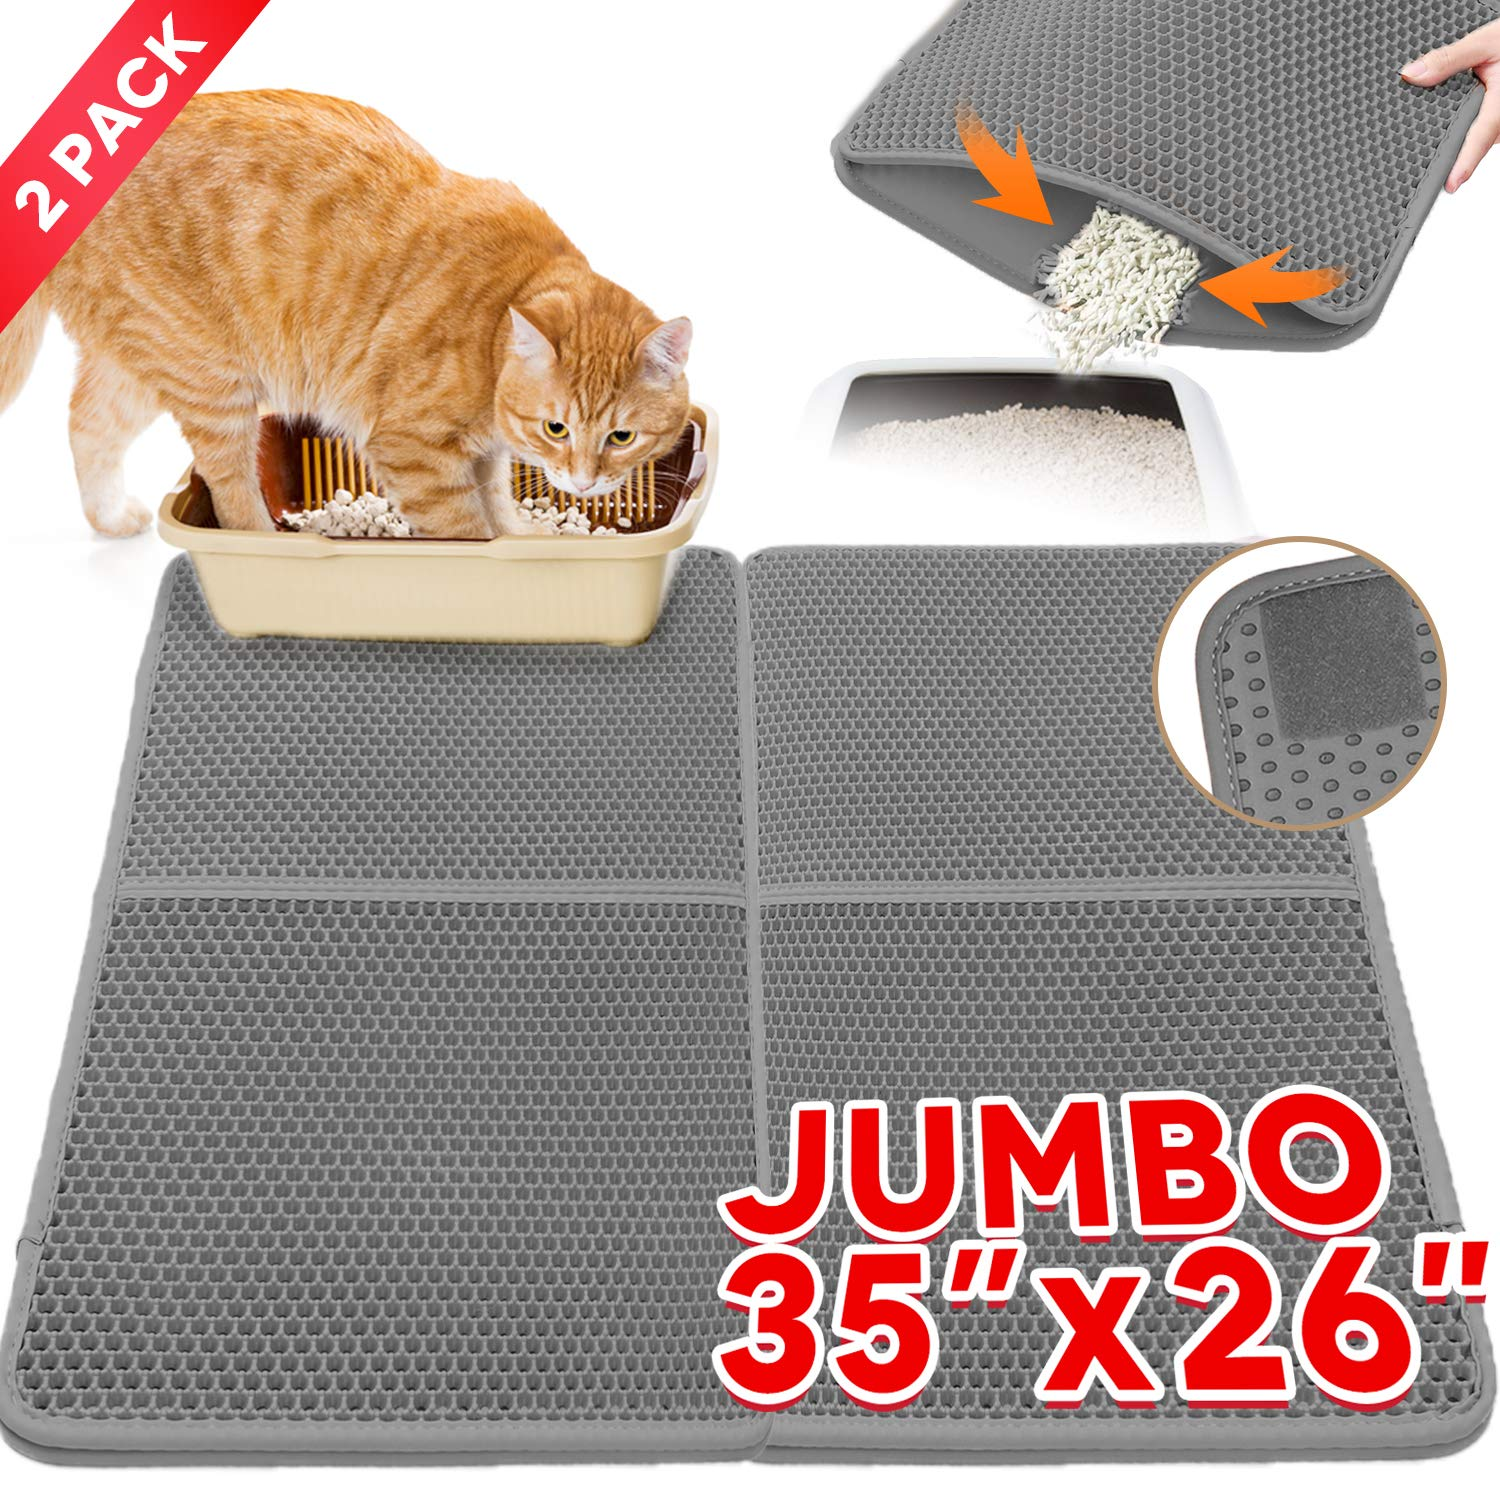 2 Pieces Cat Litter Mat Litter Trapper Cat Litter Mat Anti-Tracking Trapping Jumbo Size Honeycomb Double-Layer Design Waterproof Urine Proof Material Mat For Trapper Black Hole Litter Box Easy Clean c by lesotc